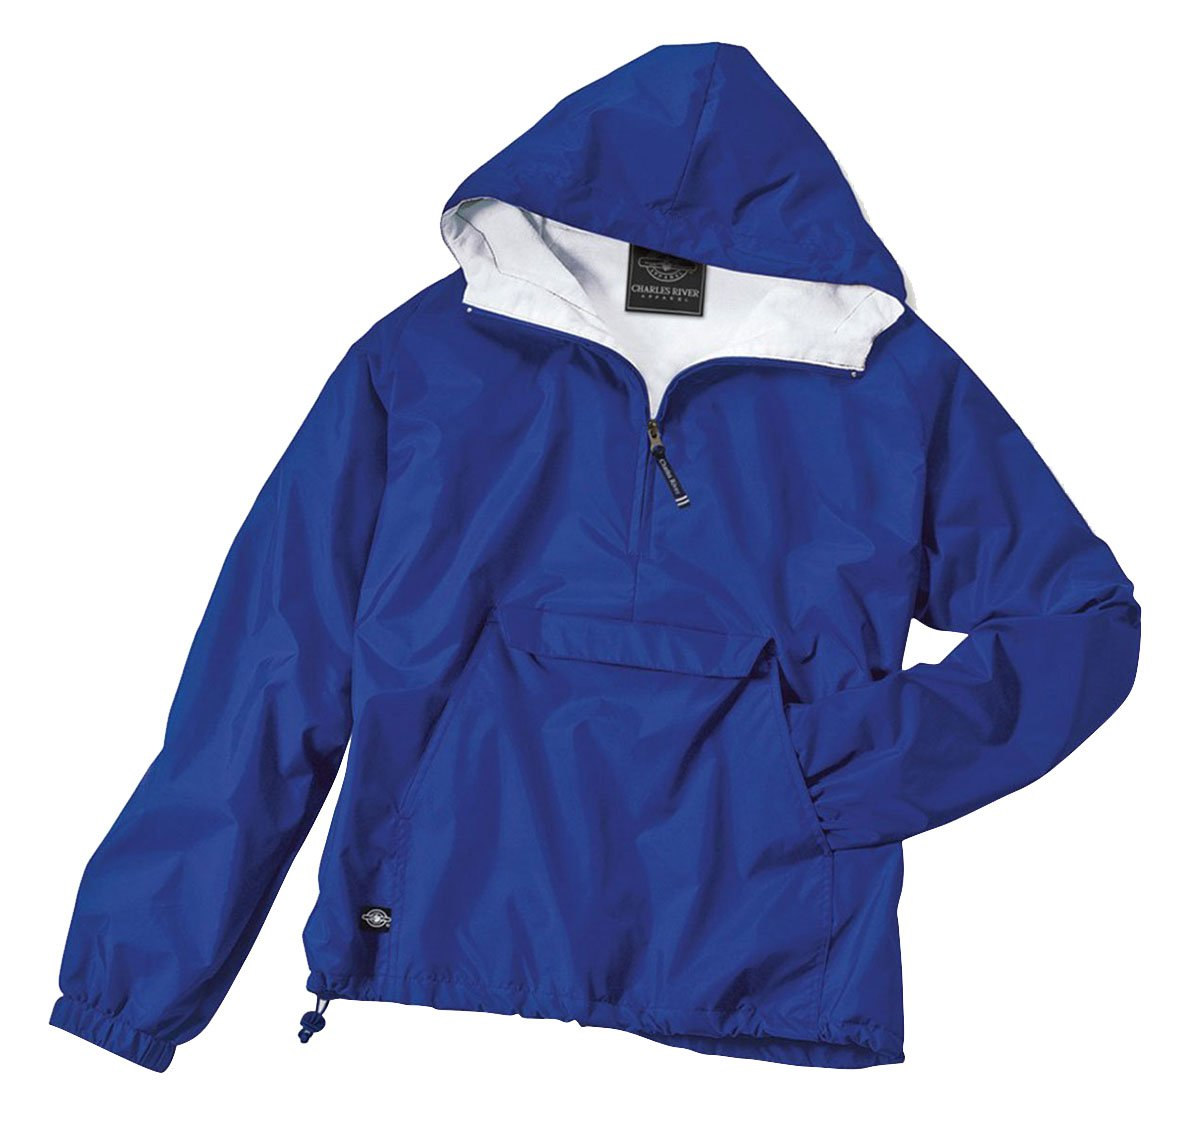 Charles River Apparel The Classic Collection Classic Solid Nylon Pullover Jacket from by Charles River Apparel